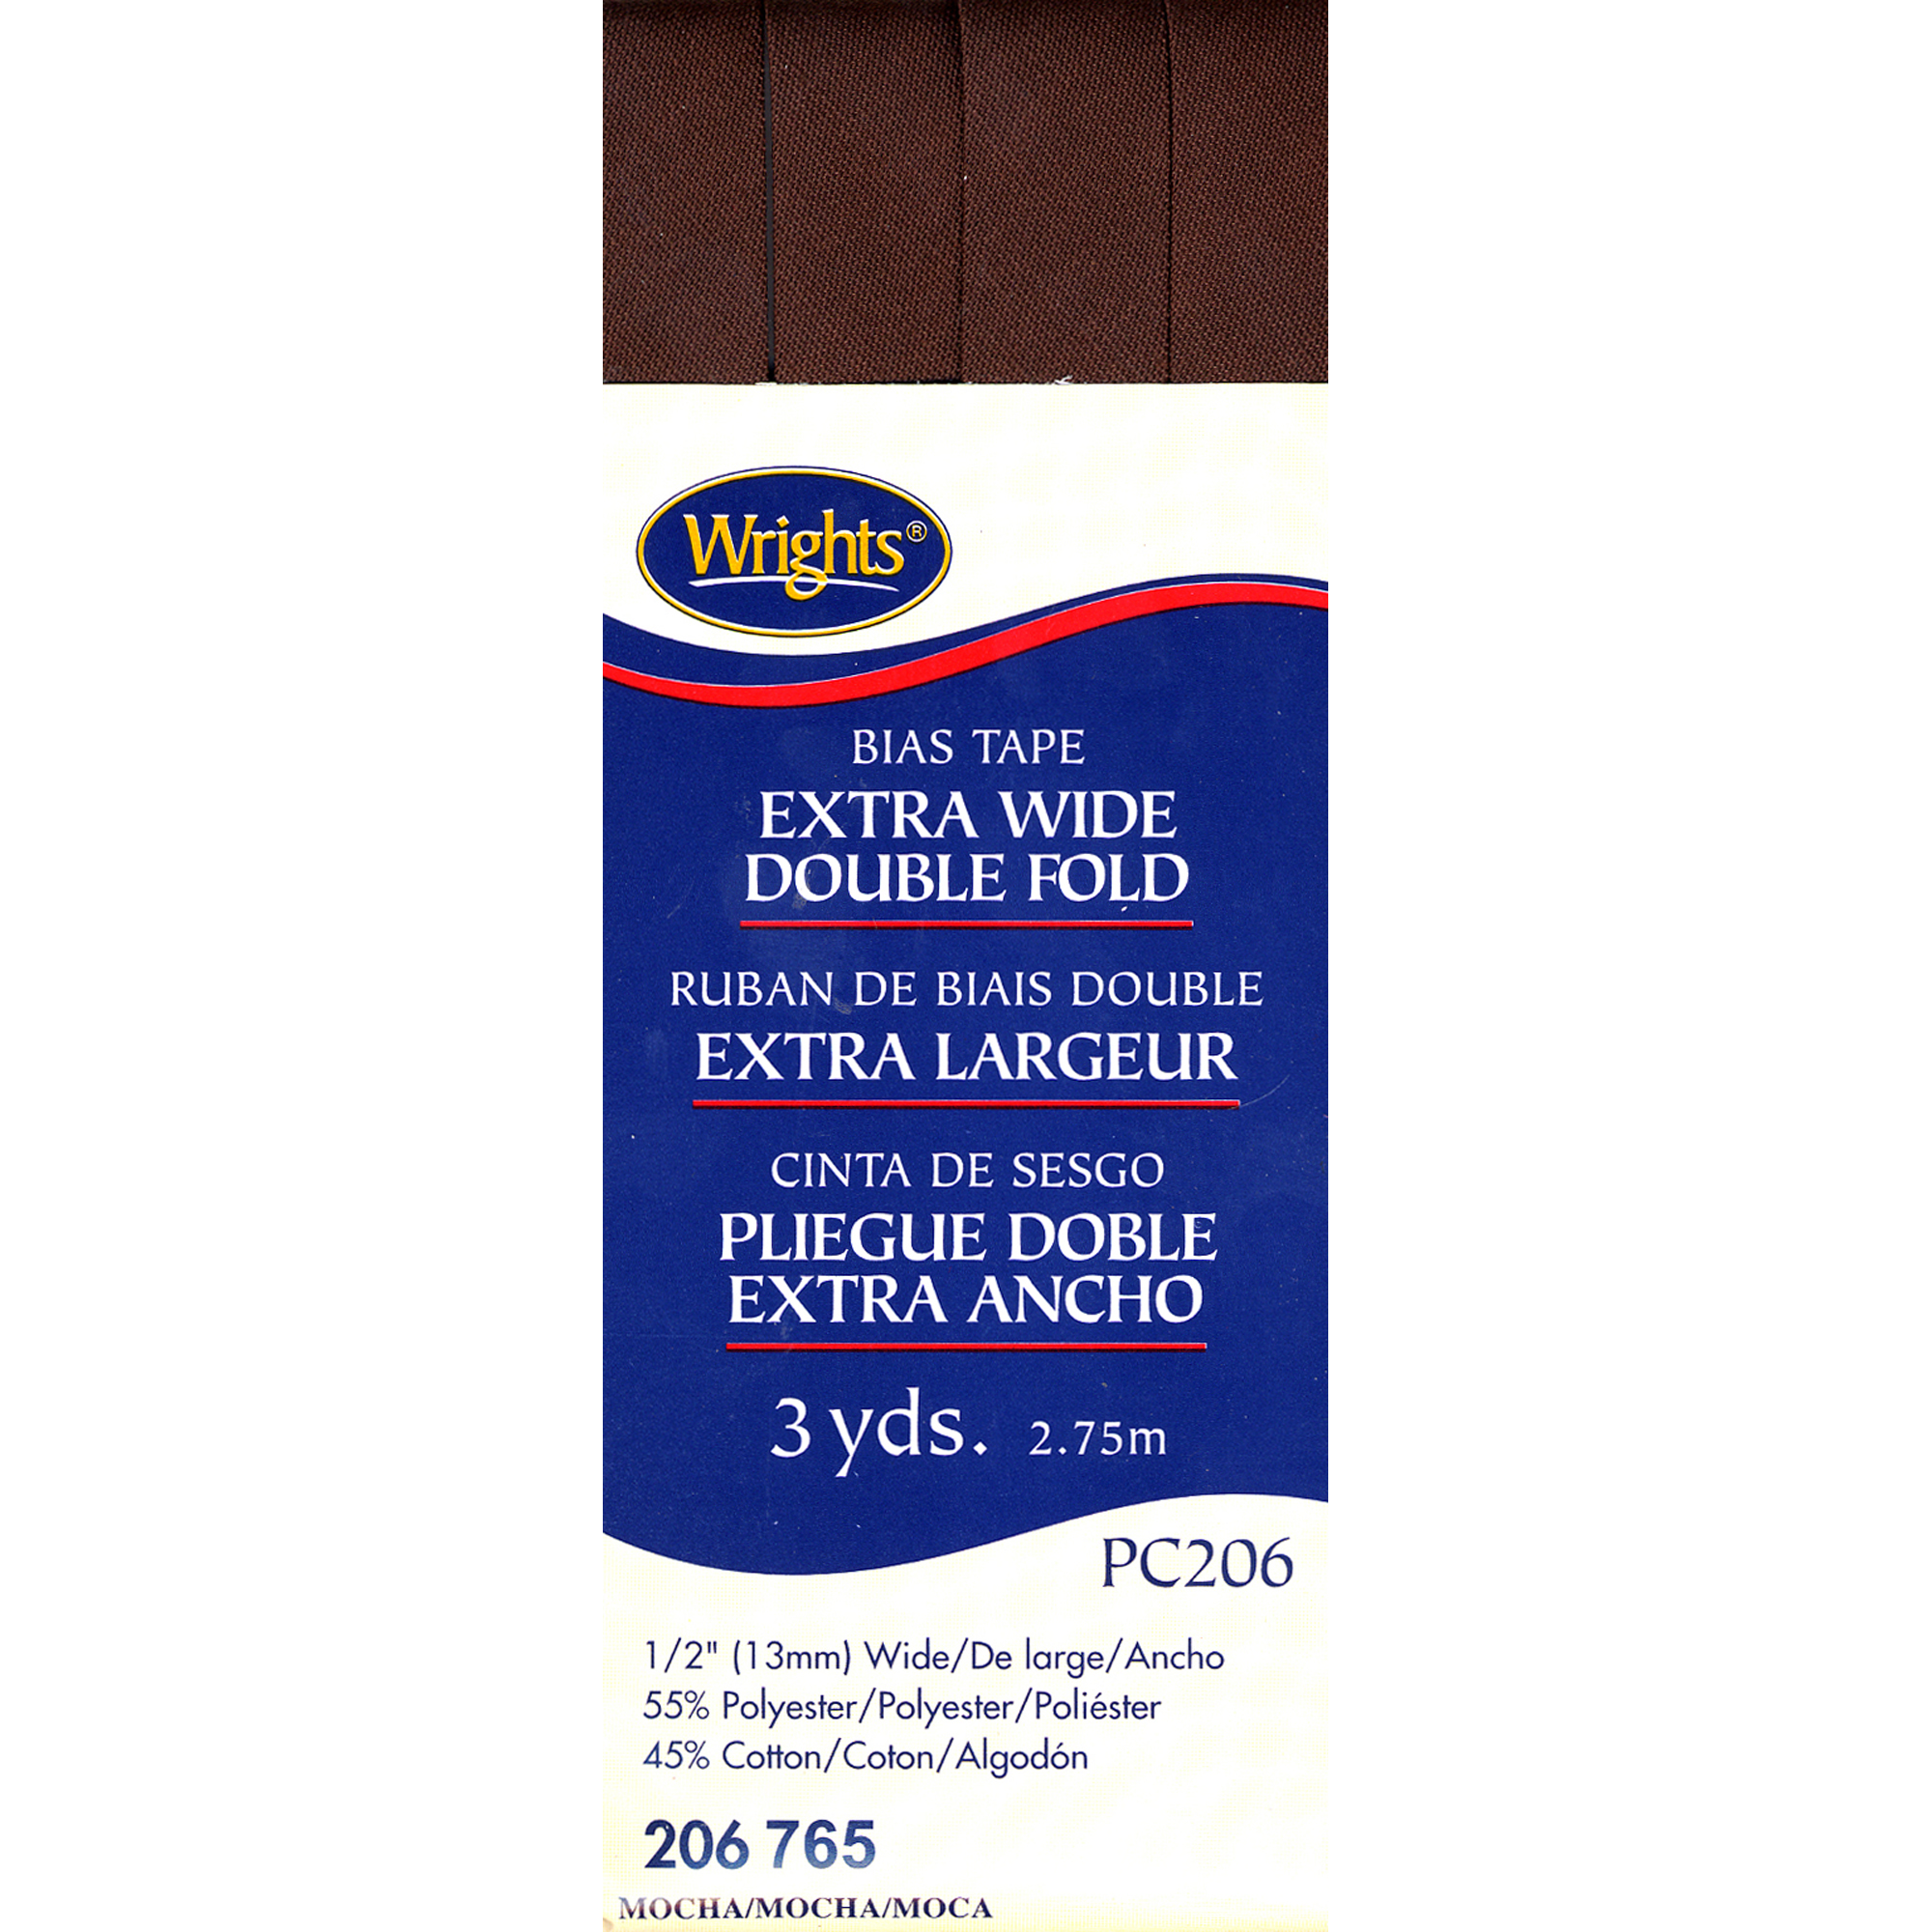 "Wrights Double Fold Bias Tape 1/2""X3yd-Mocha"